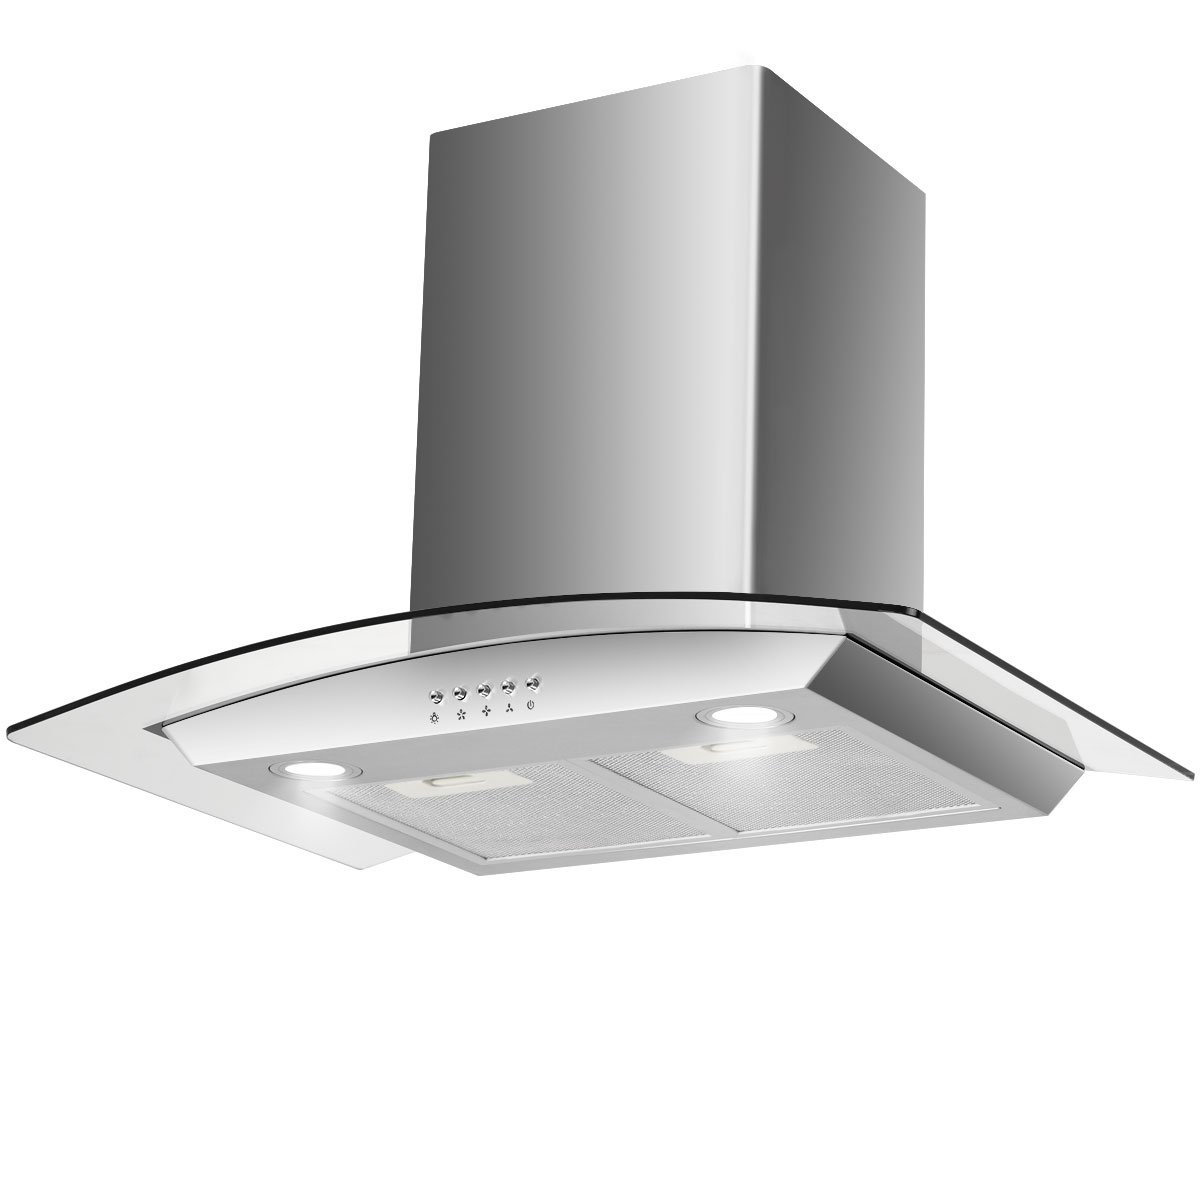 "COSTWAY 30"" Wall Mount Range Hood Stainless Steel Kitchen Cooking Vent Fan with LED Light (Wall Mount & Tempered Glass)"